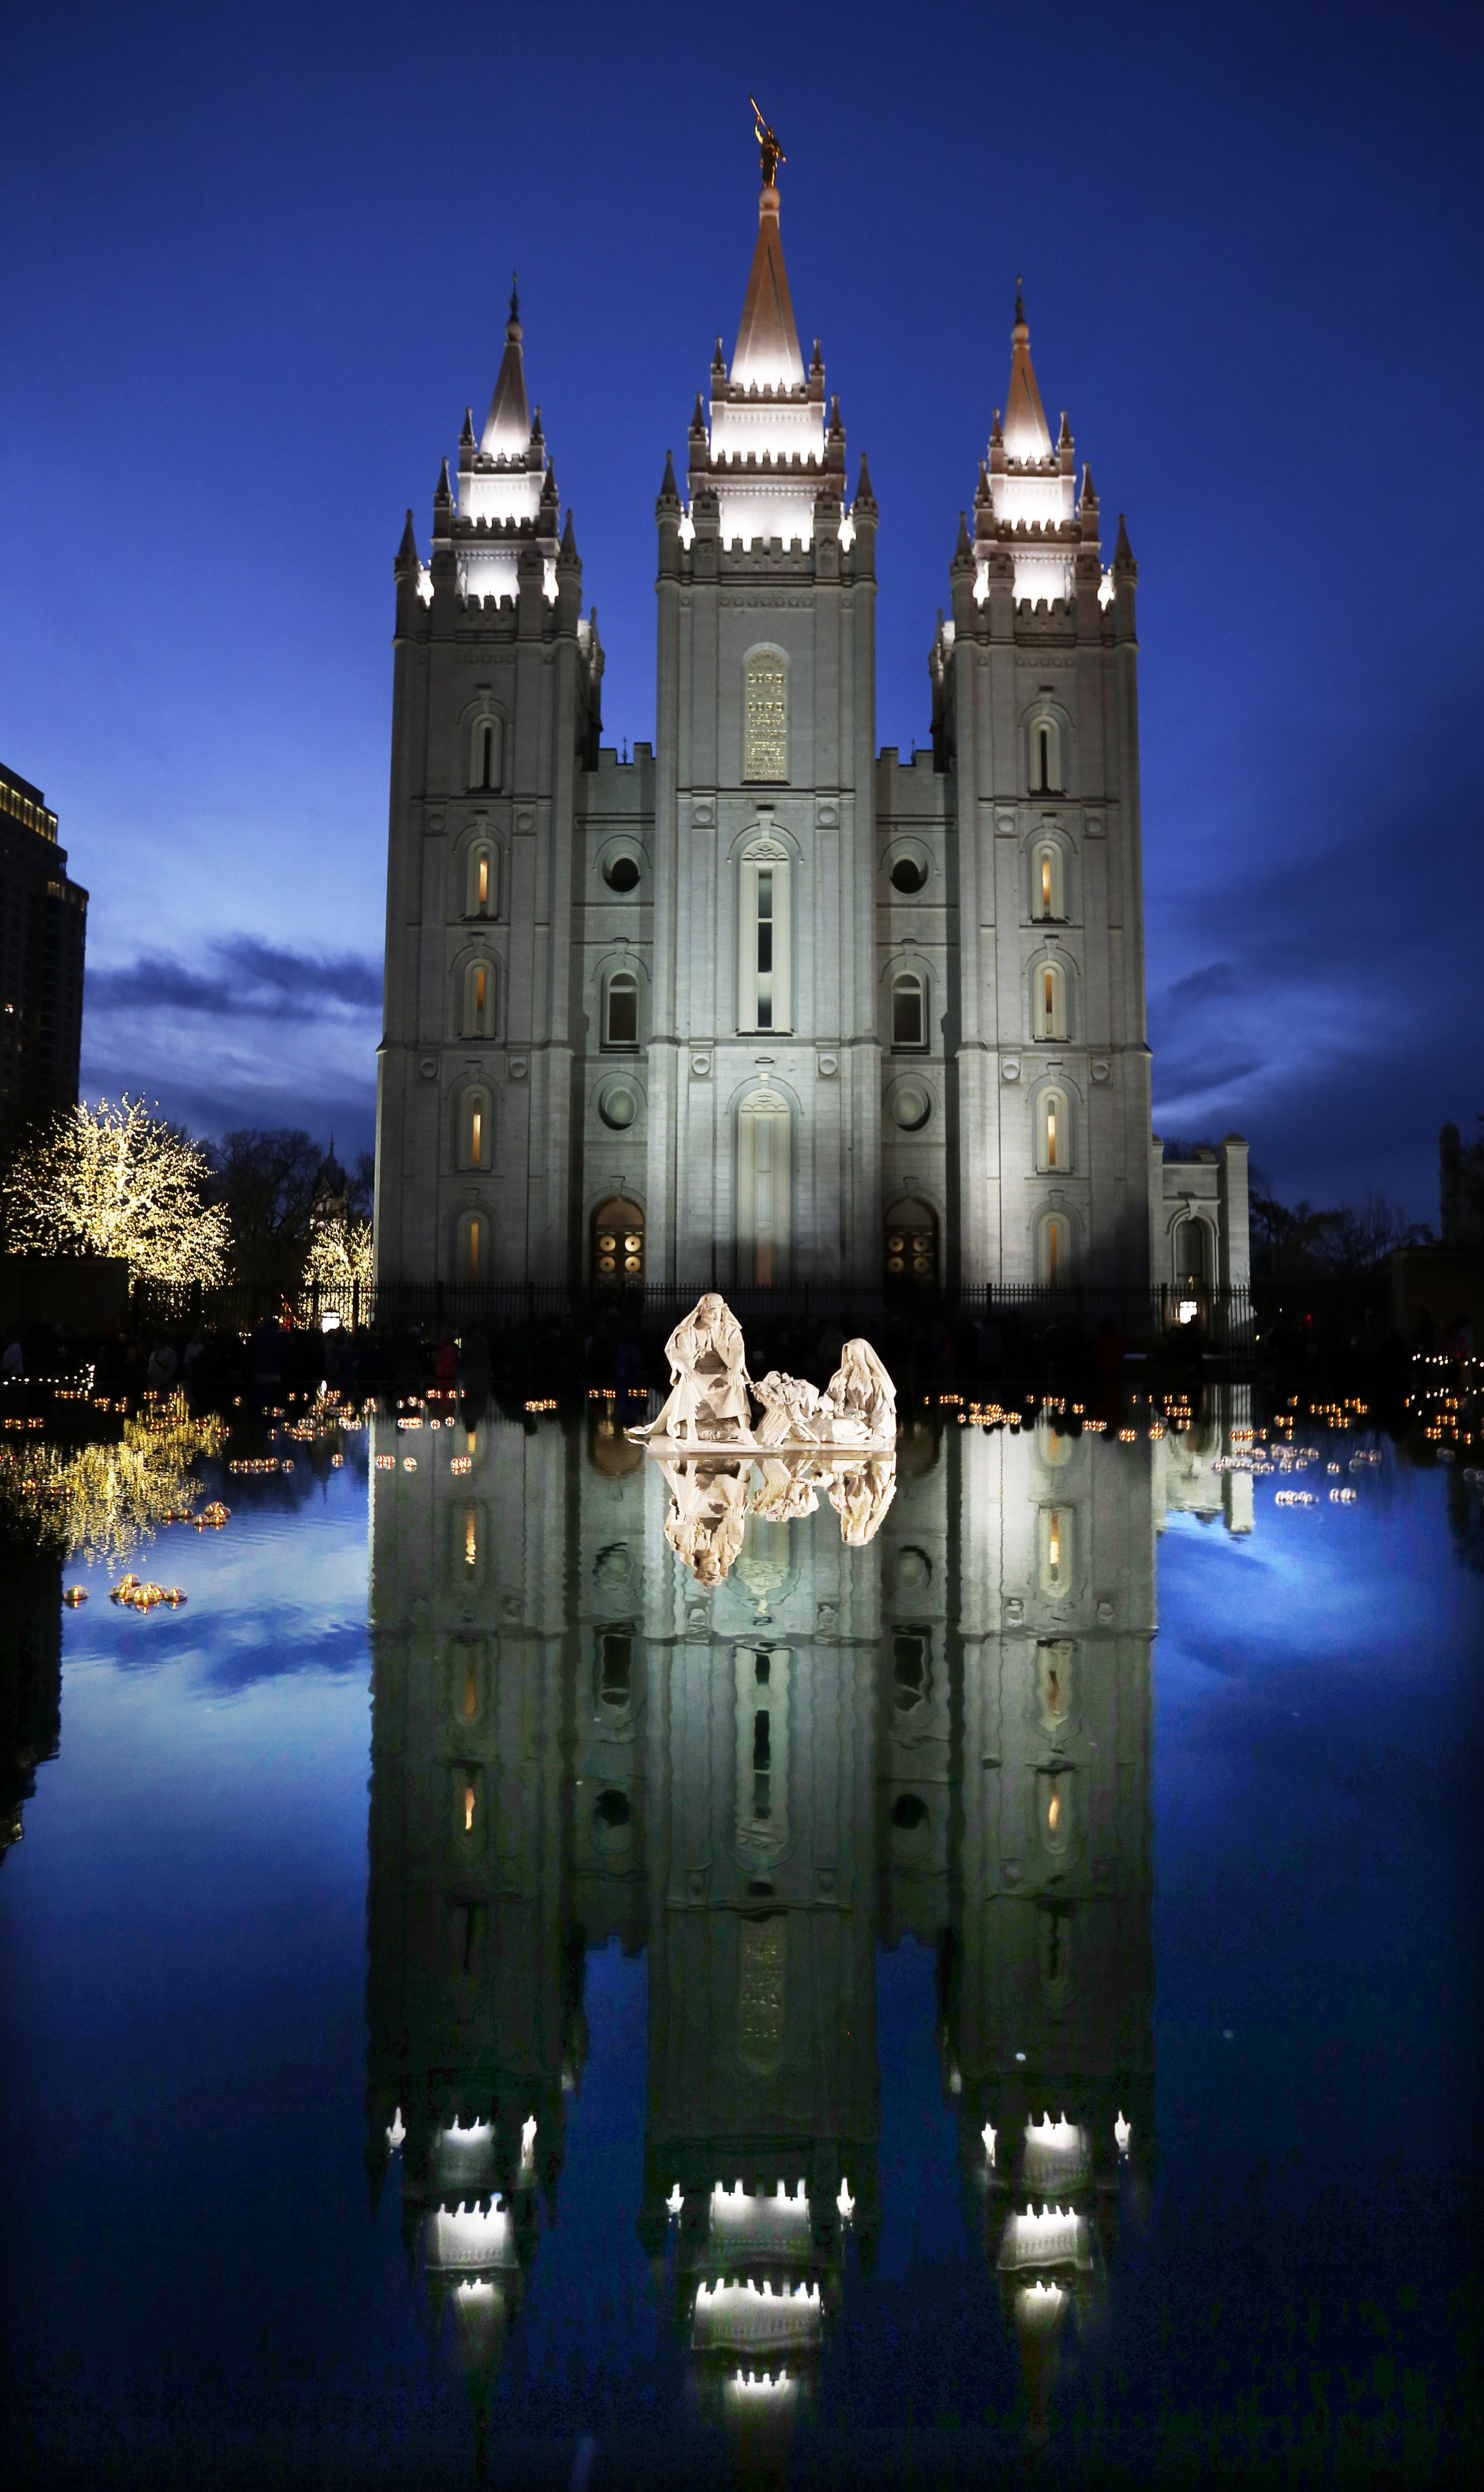 The Salt Lake Temple reflection is seen in the Main Street Plaza reflection pond in Salt Lake City on Friday, Nov. 24, 2017.